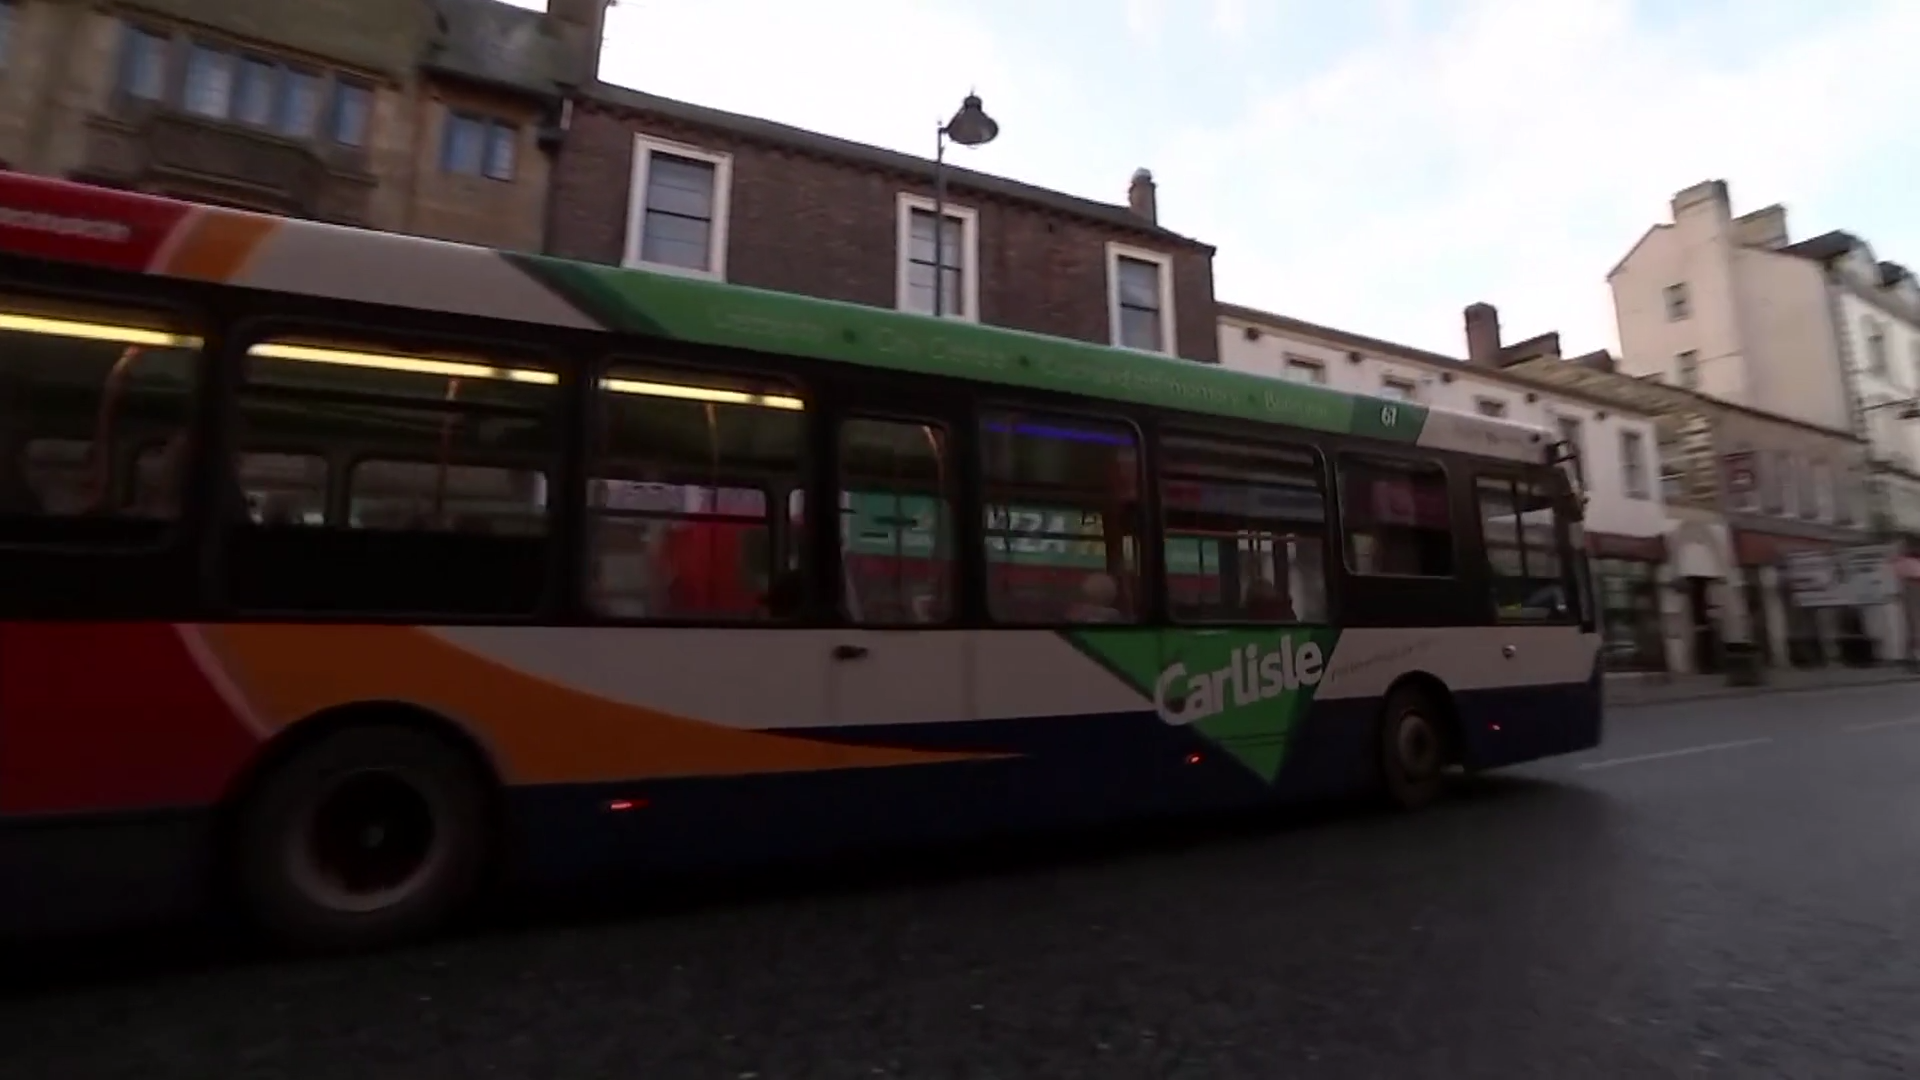 t1IDb9SCr2c image 1920x1080 - Johnson unveils £5bn buses and cycles package – Channel 4 News